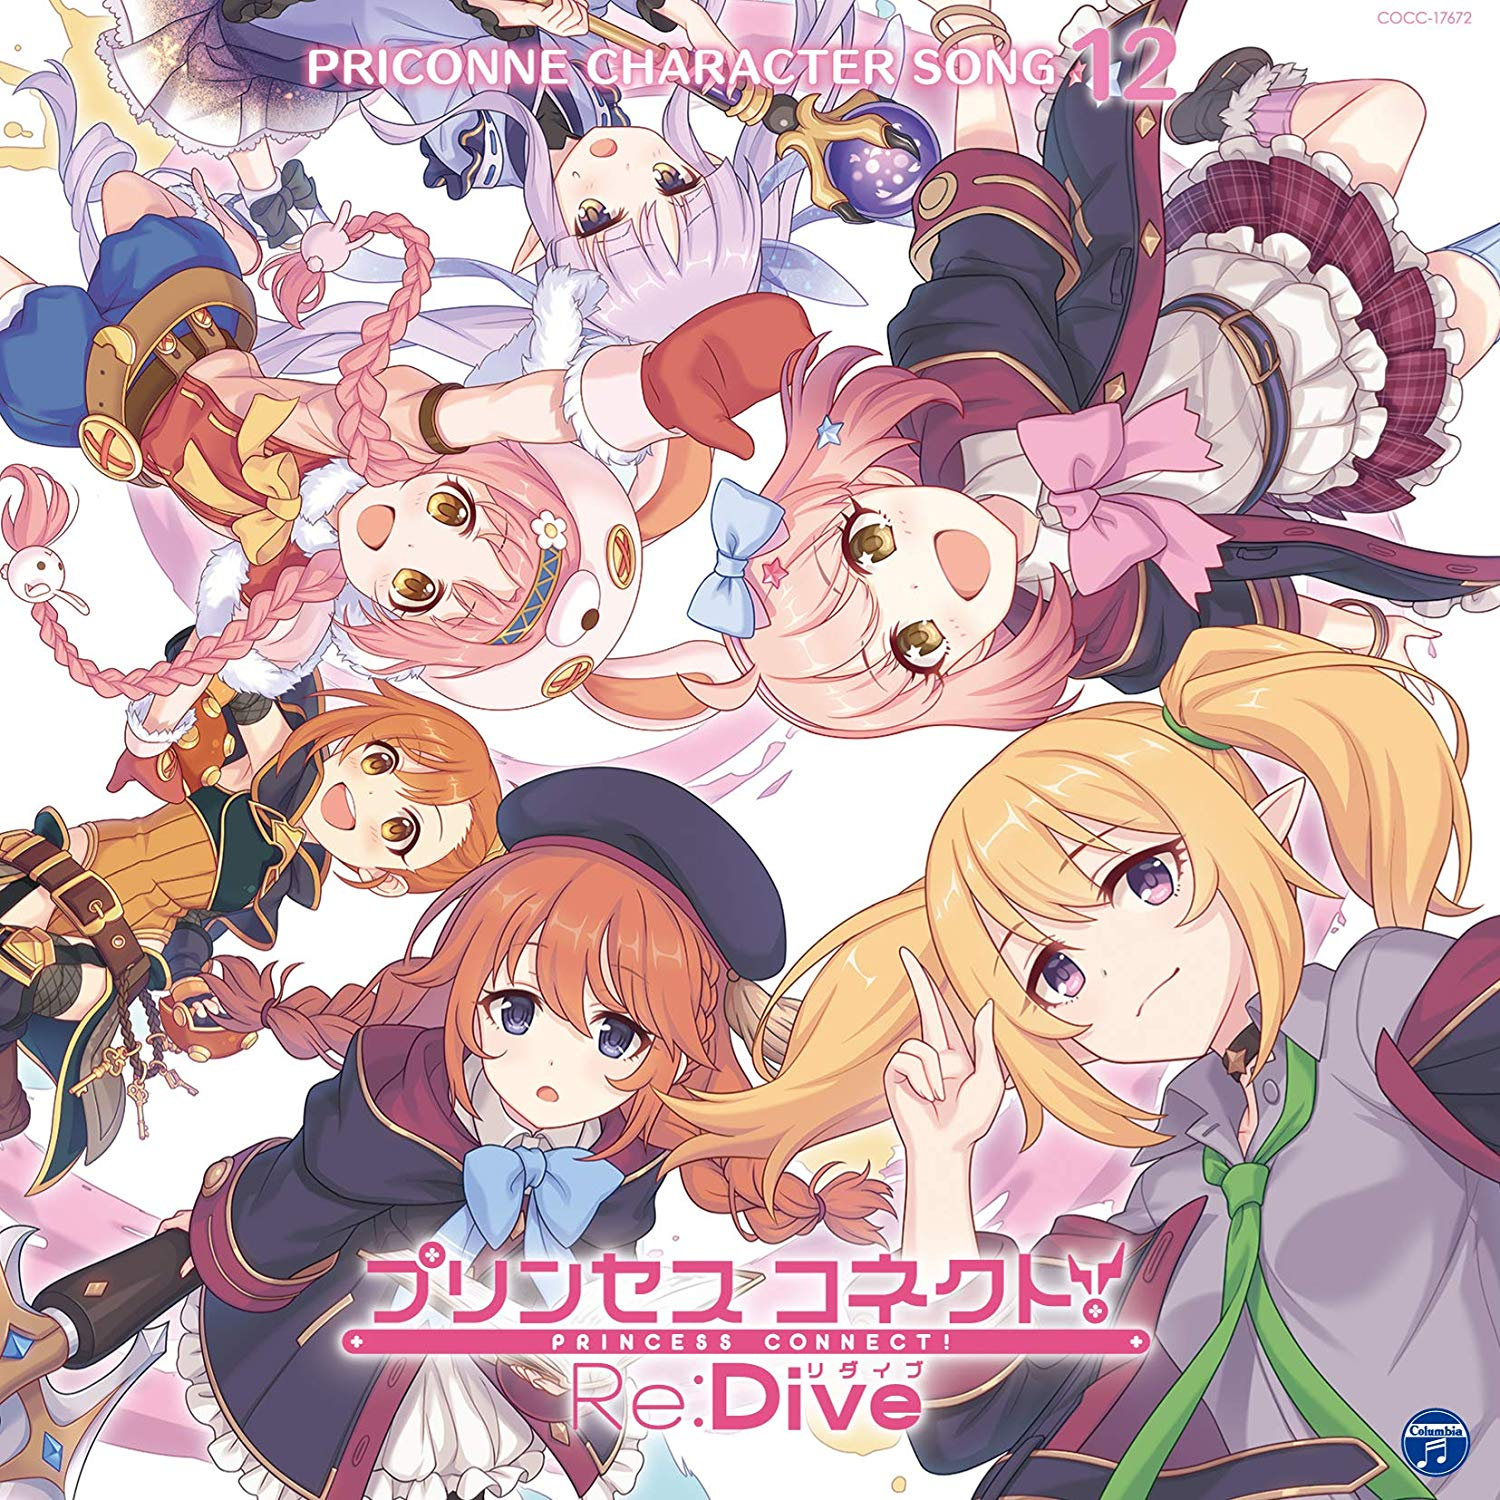 PRINCESS CONNECT! Re:Dive PRICONNE CHARACTER SONG 12  プリンセスコネクト! Re:Dive PRICONNE CHARACTER SONG 12